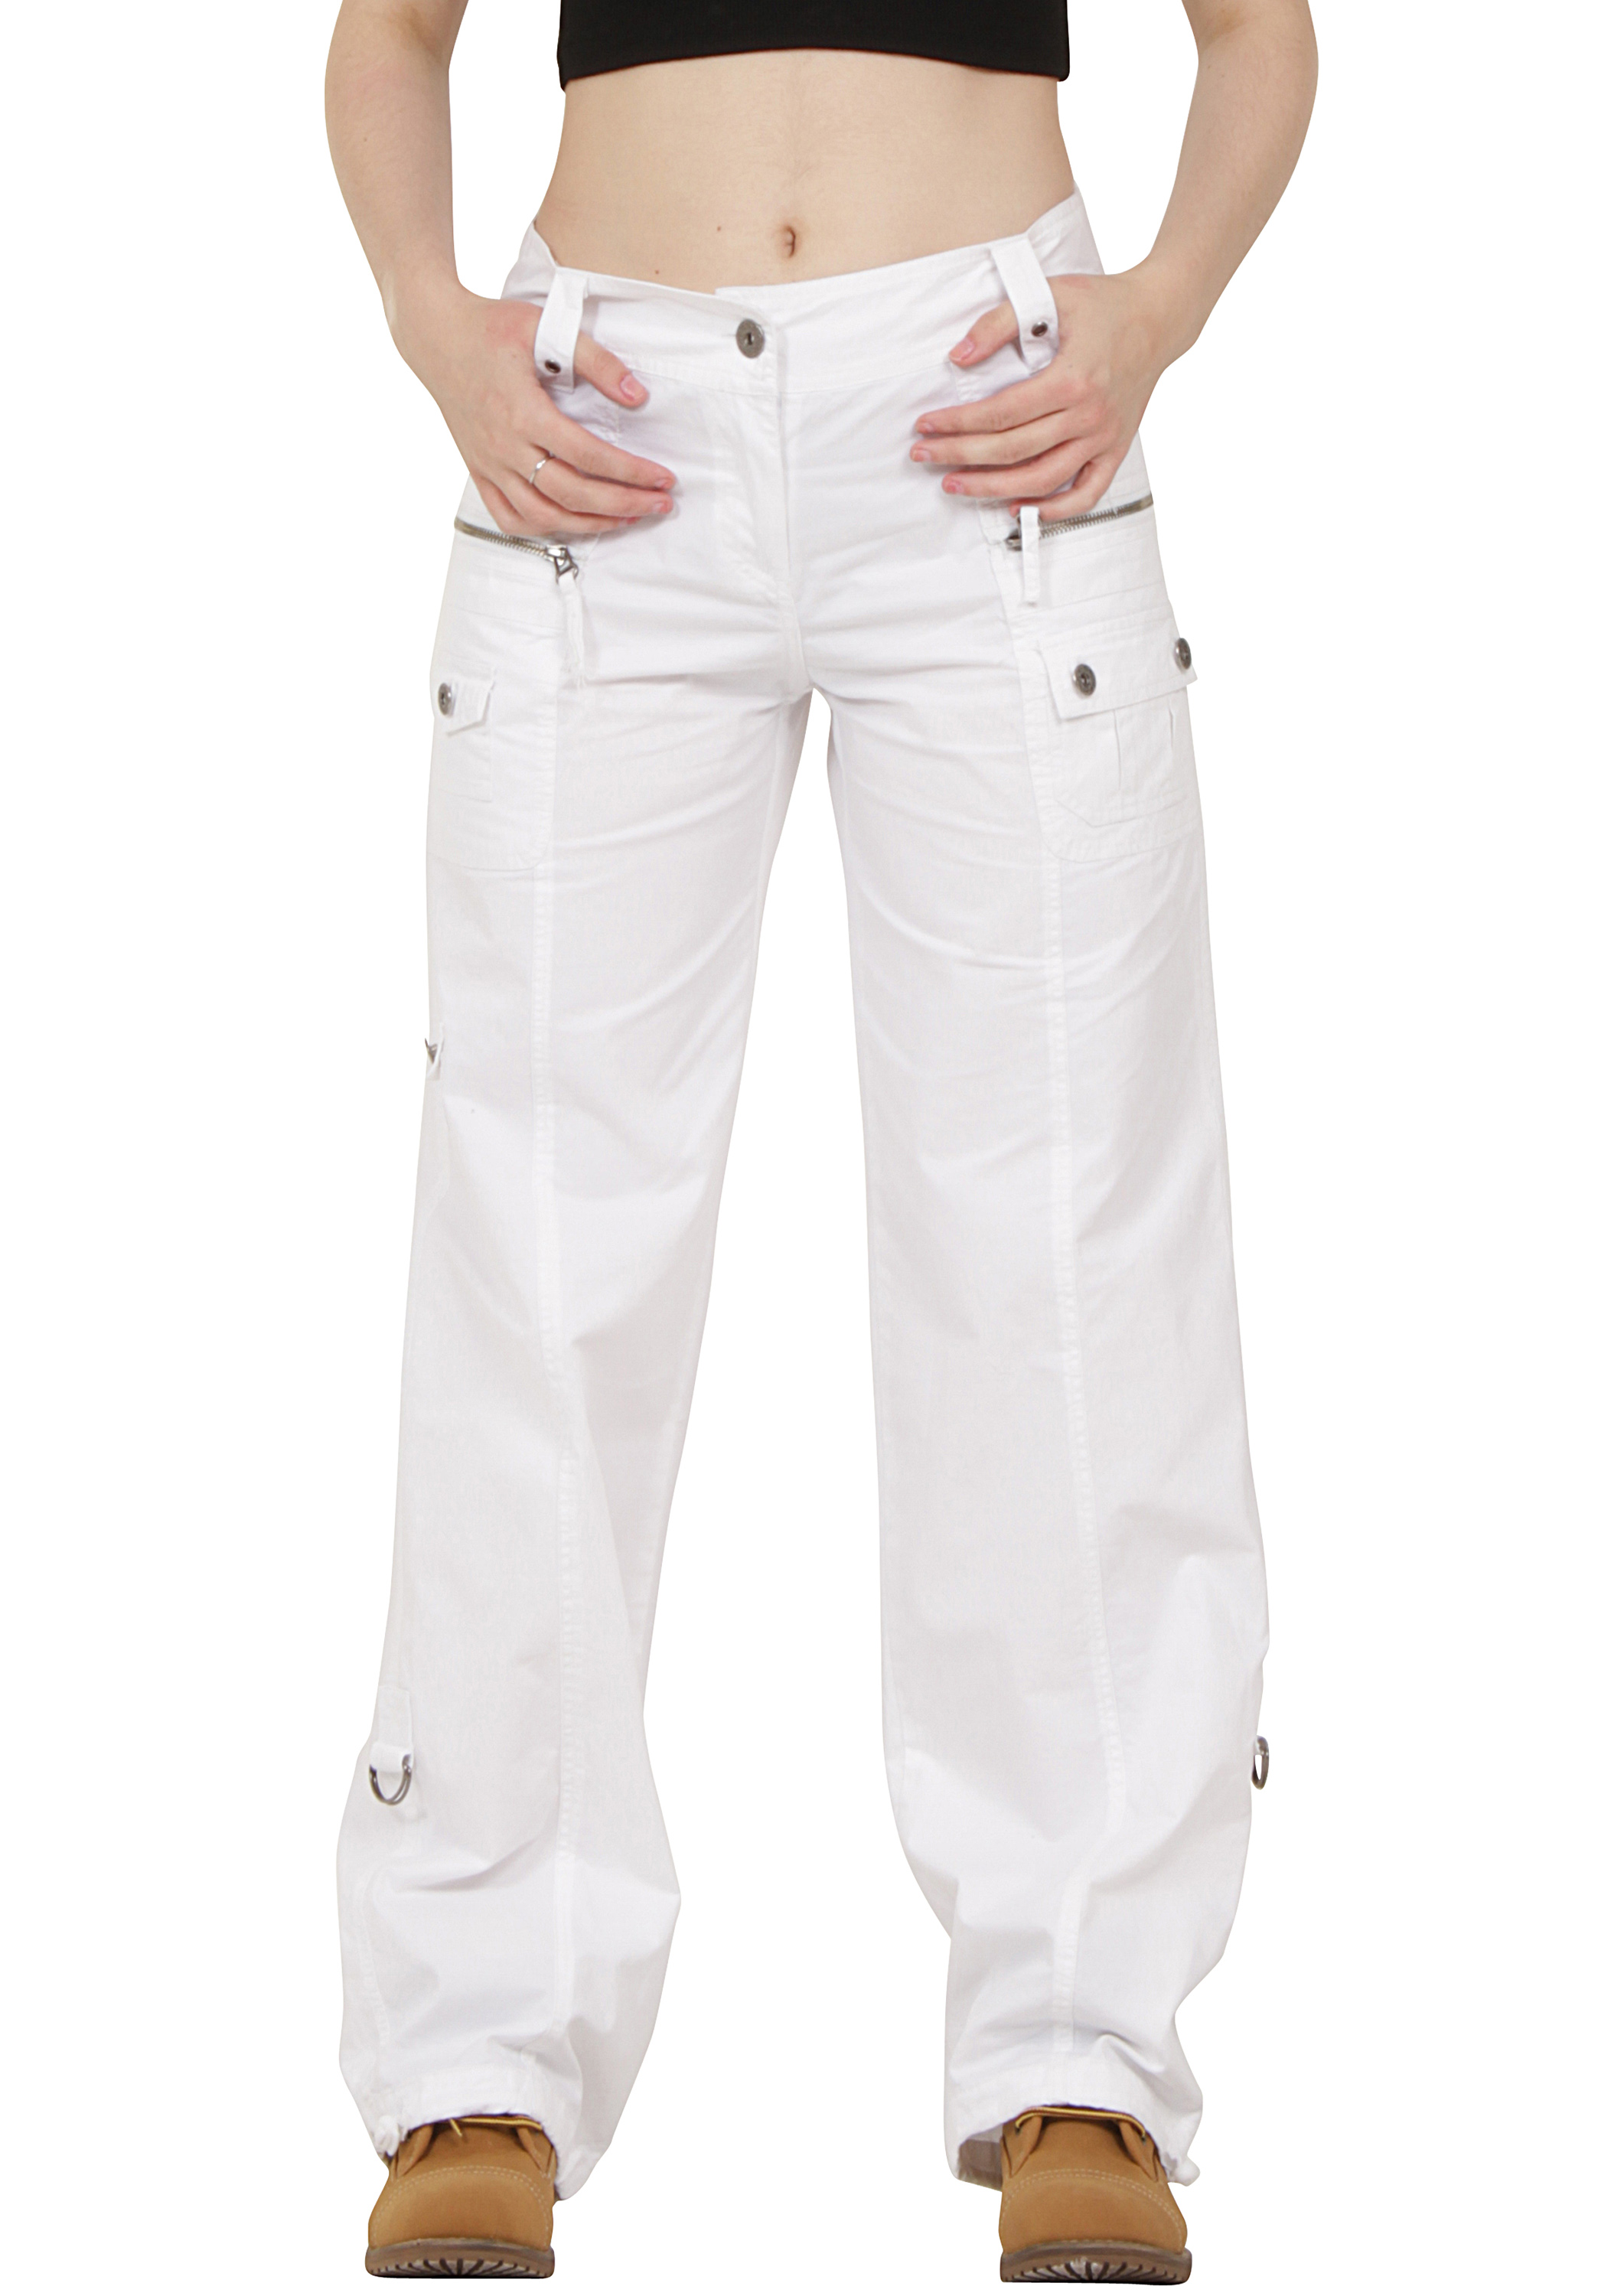 Elegant White Cargo Pants Womens With New Images In Thailand U2013 Playzoa.com